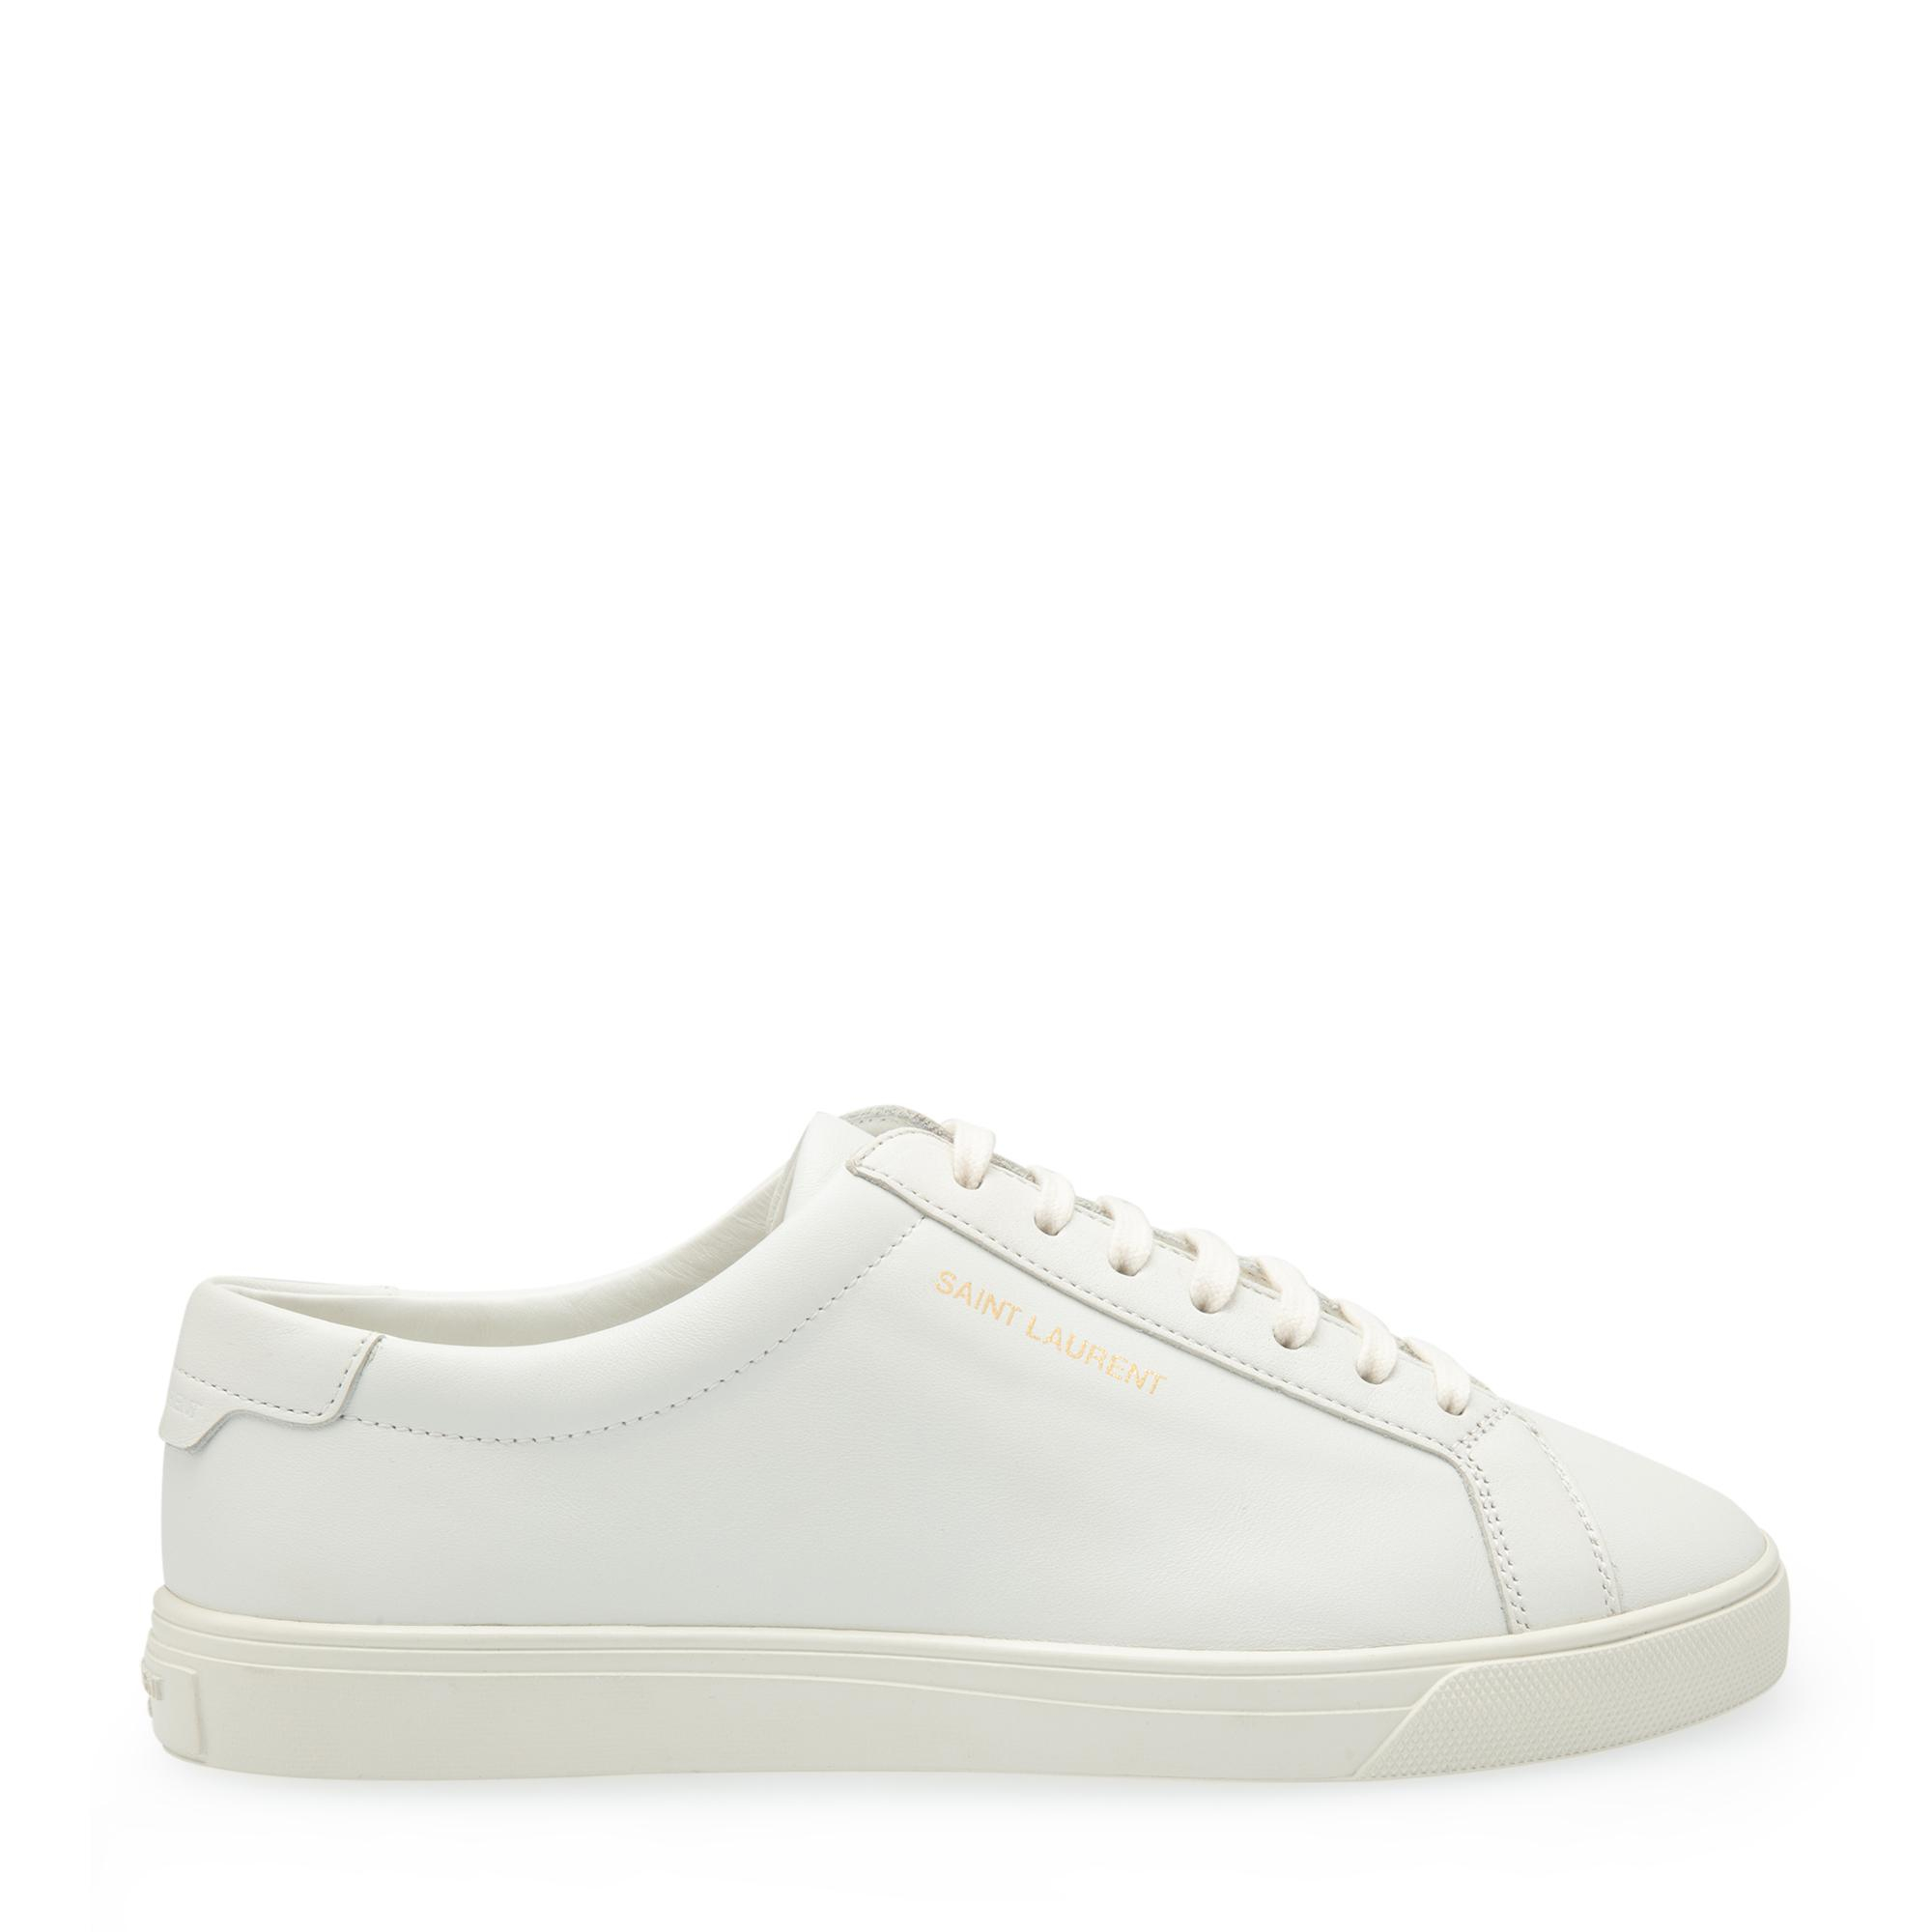 Andy sneakers